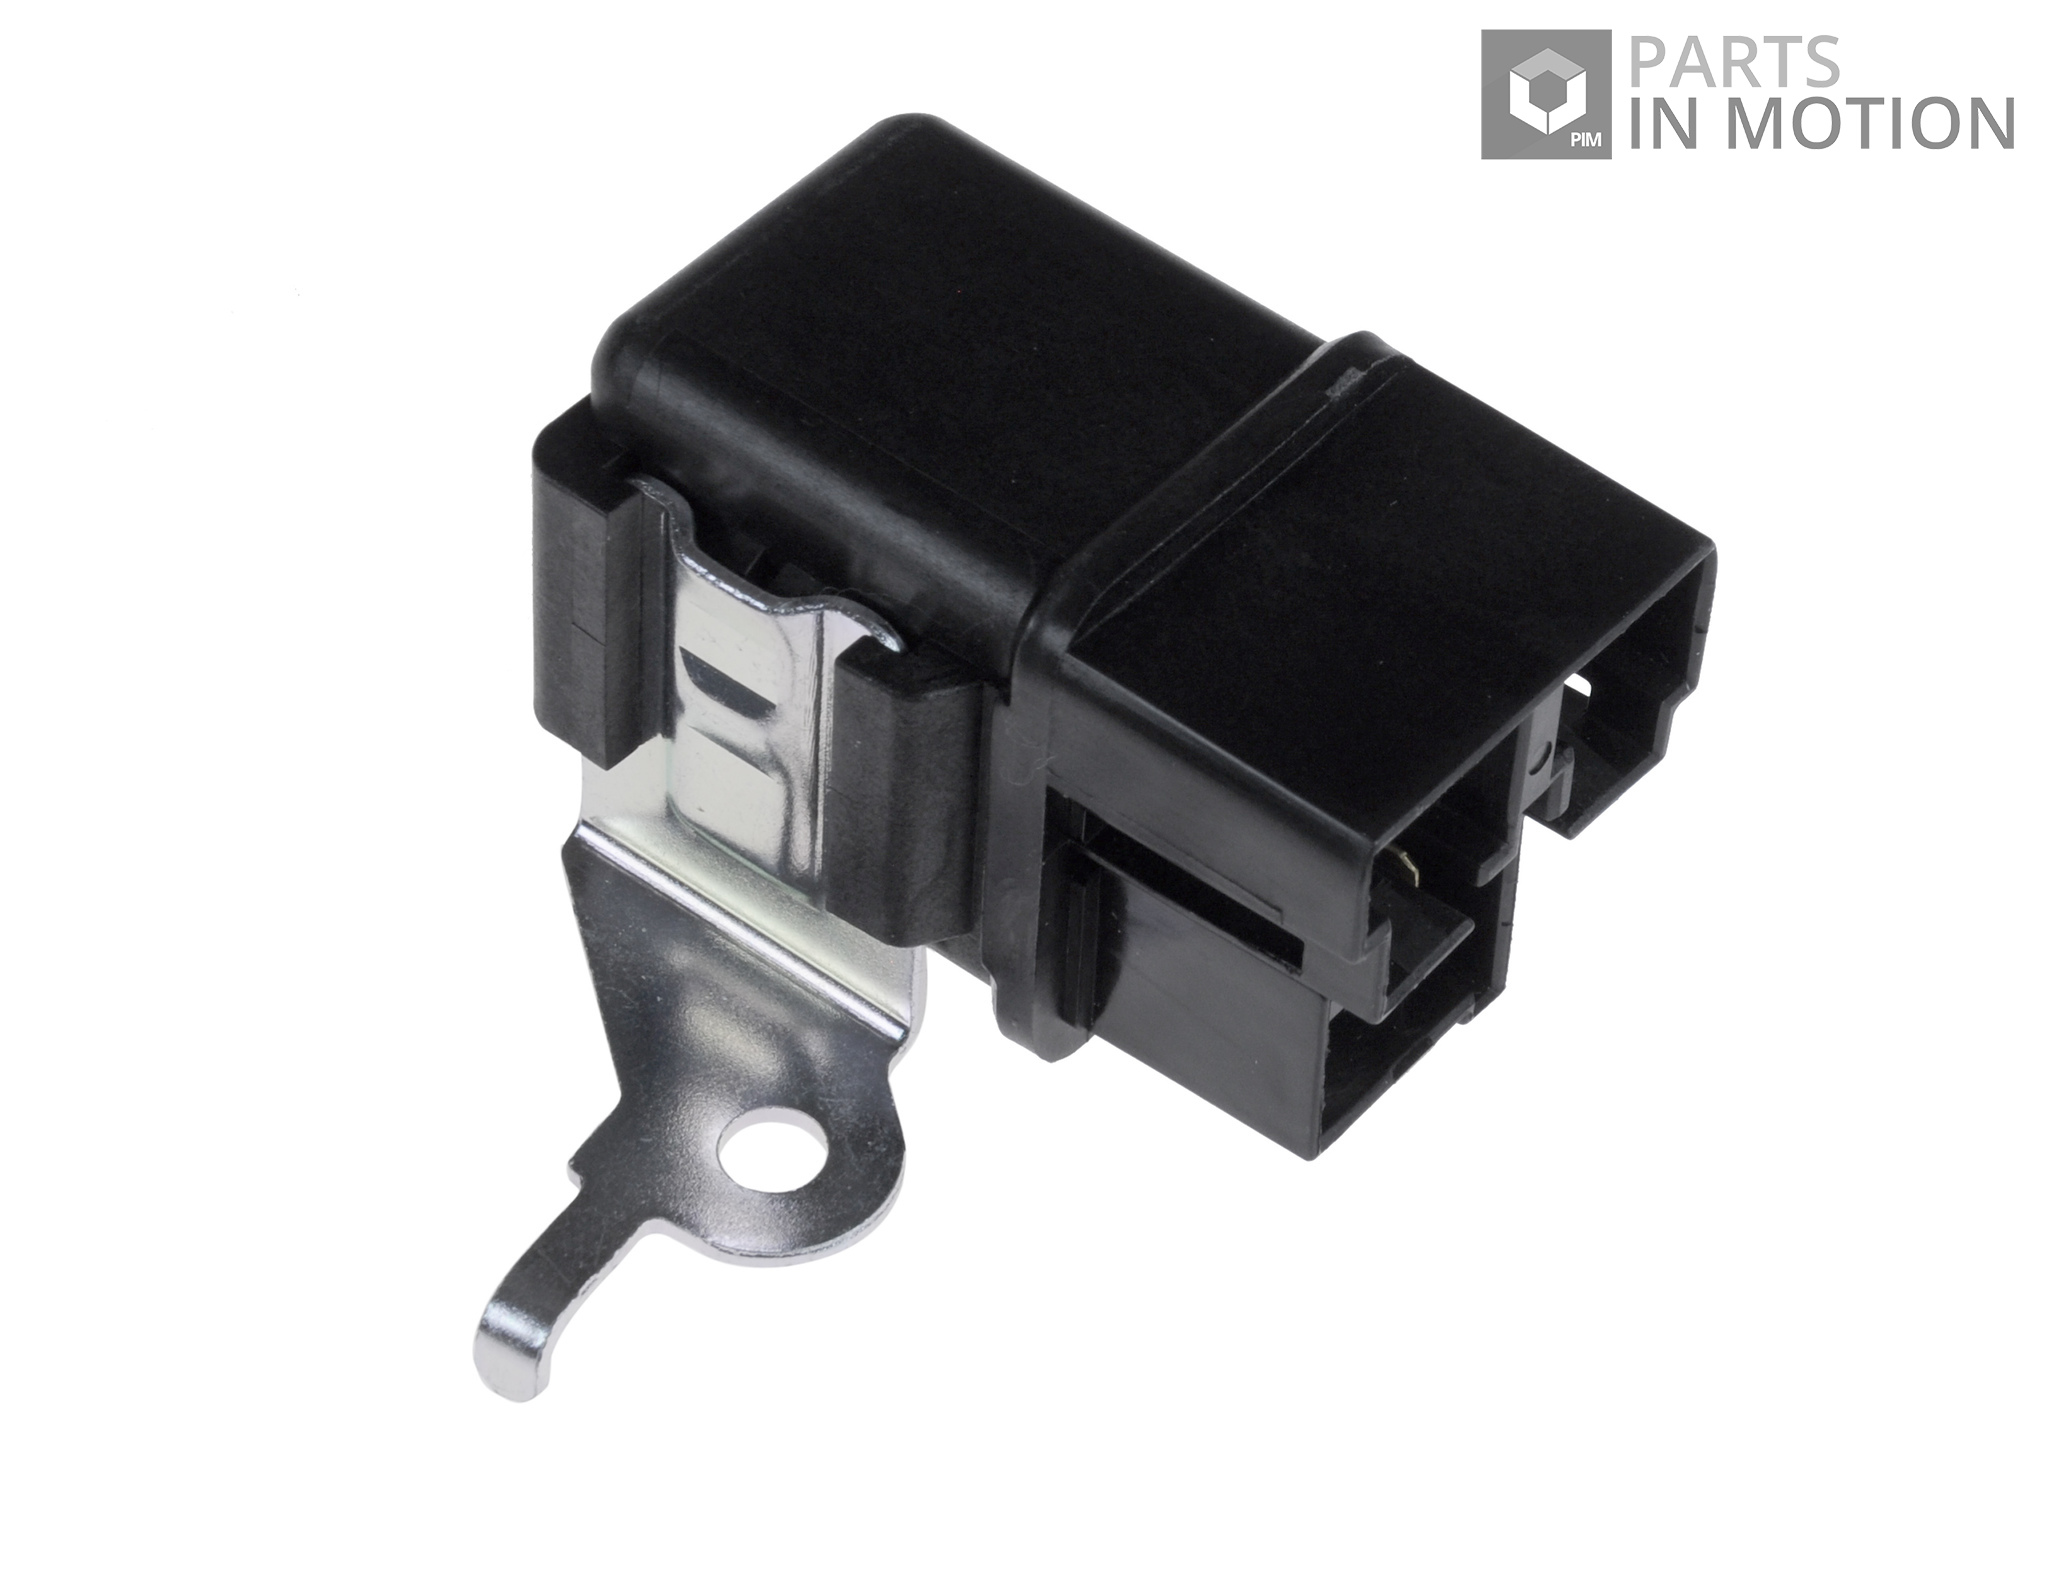 glow plug relay fits nissan x trail t30 2 2d 2001 on. Black Bedroom Furniture Sets. Home Design Ideas